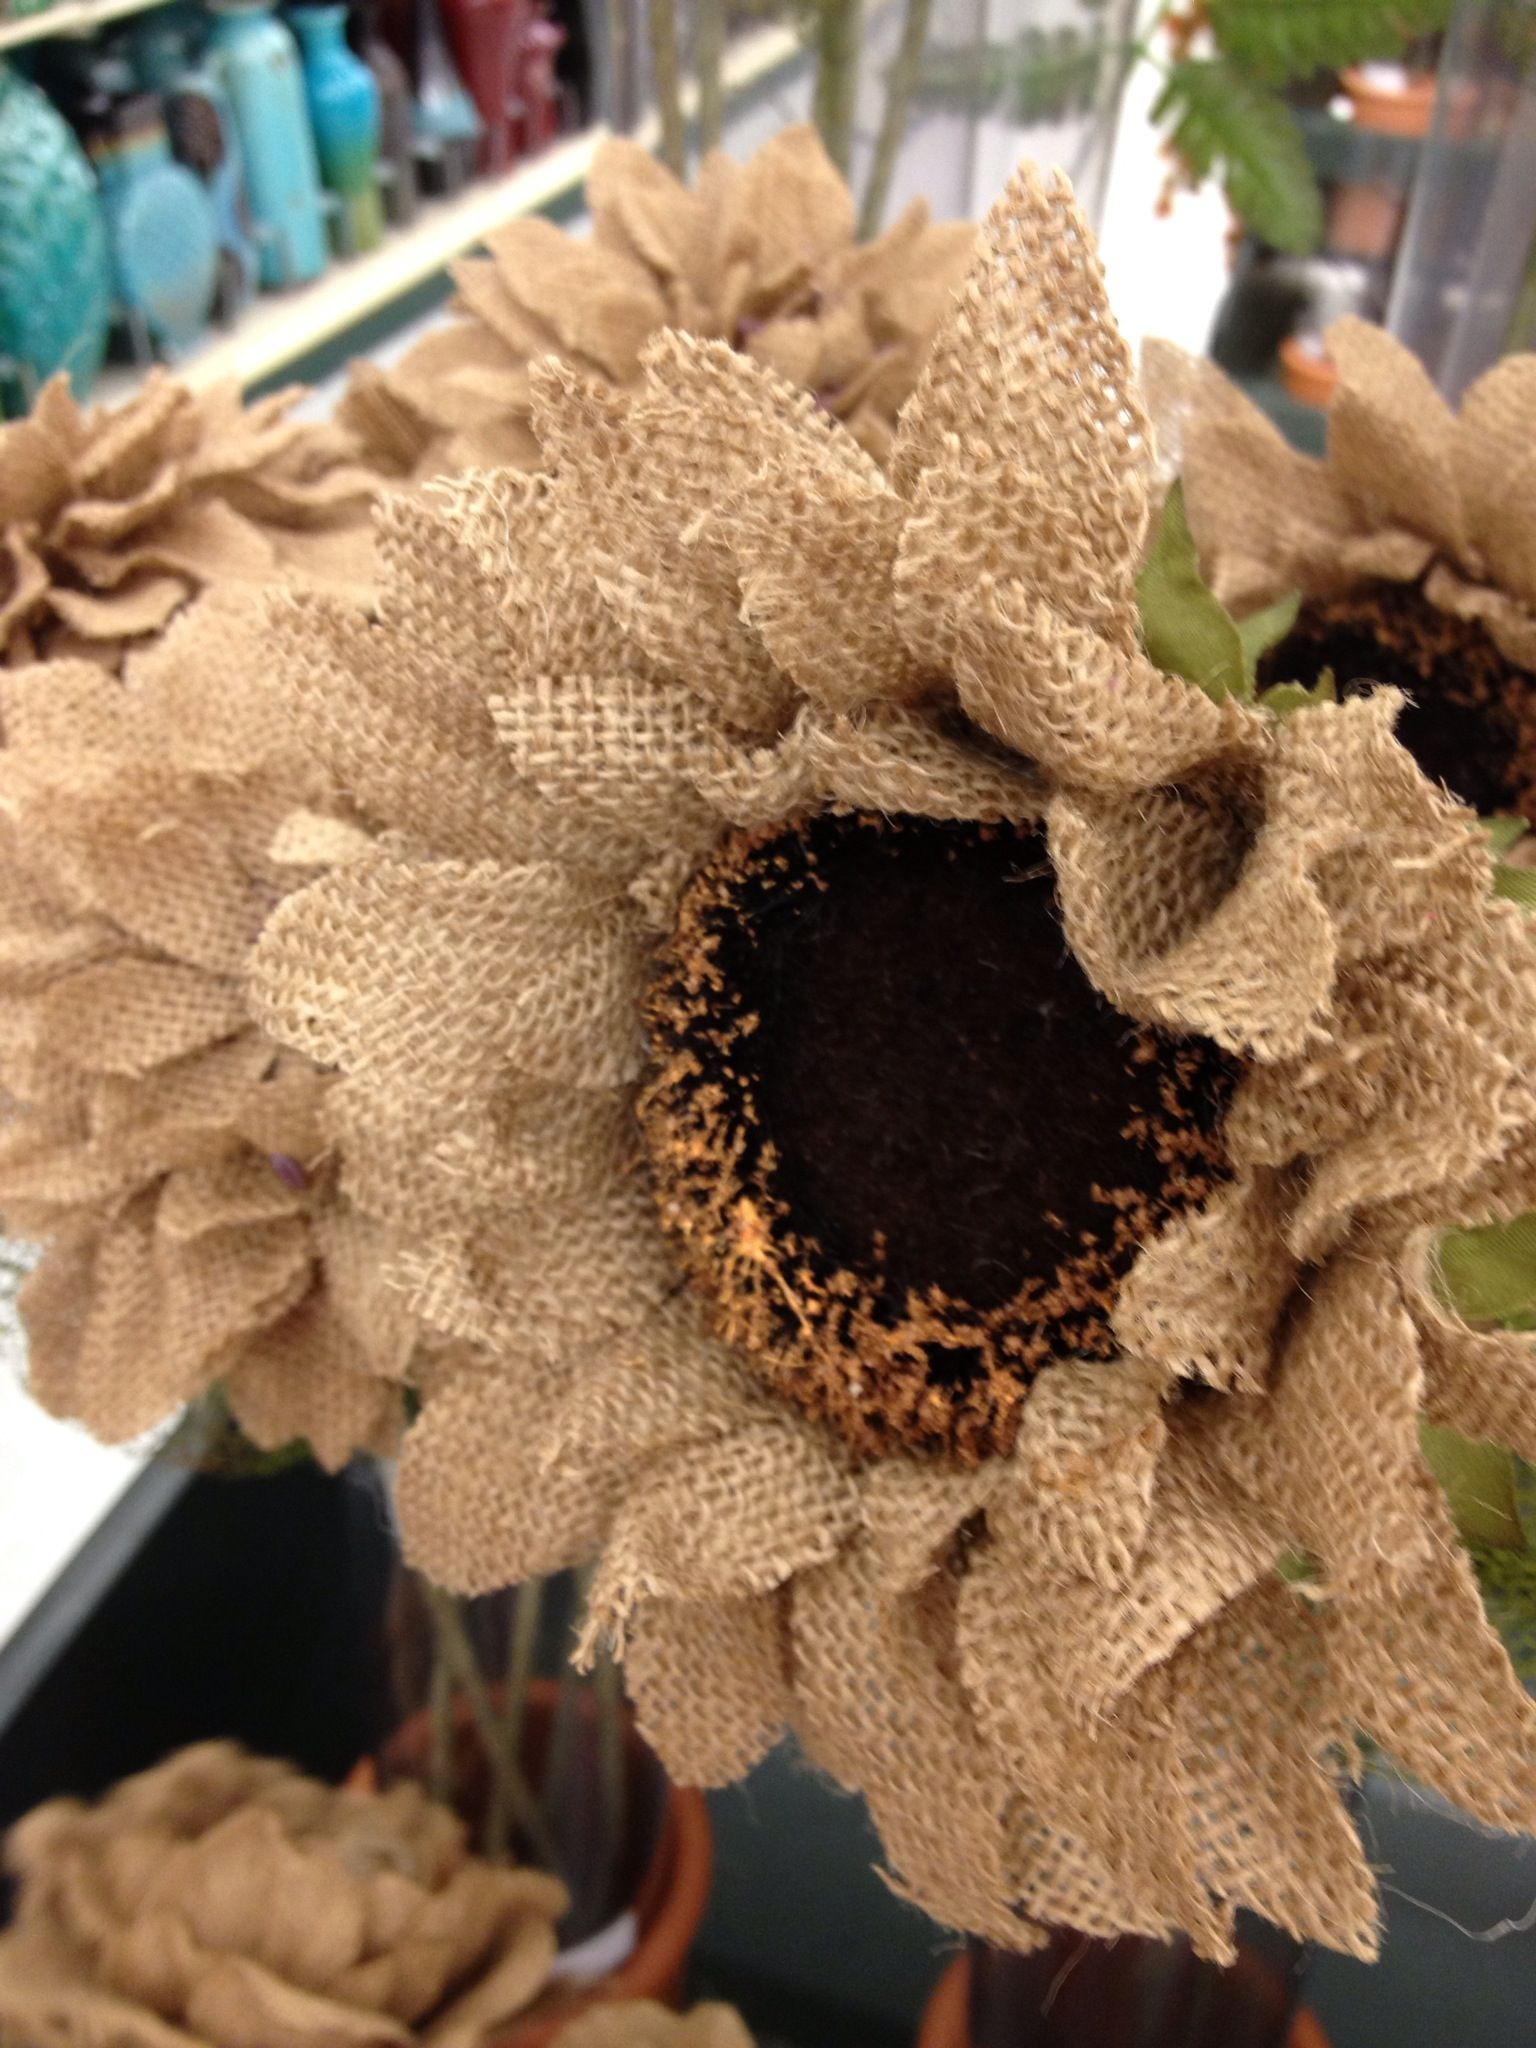 Burlap flowers at hobby lobby channeling martha stewart for How to make hessian flowers